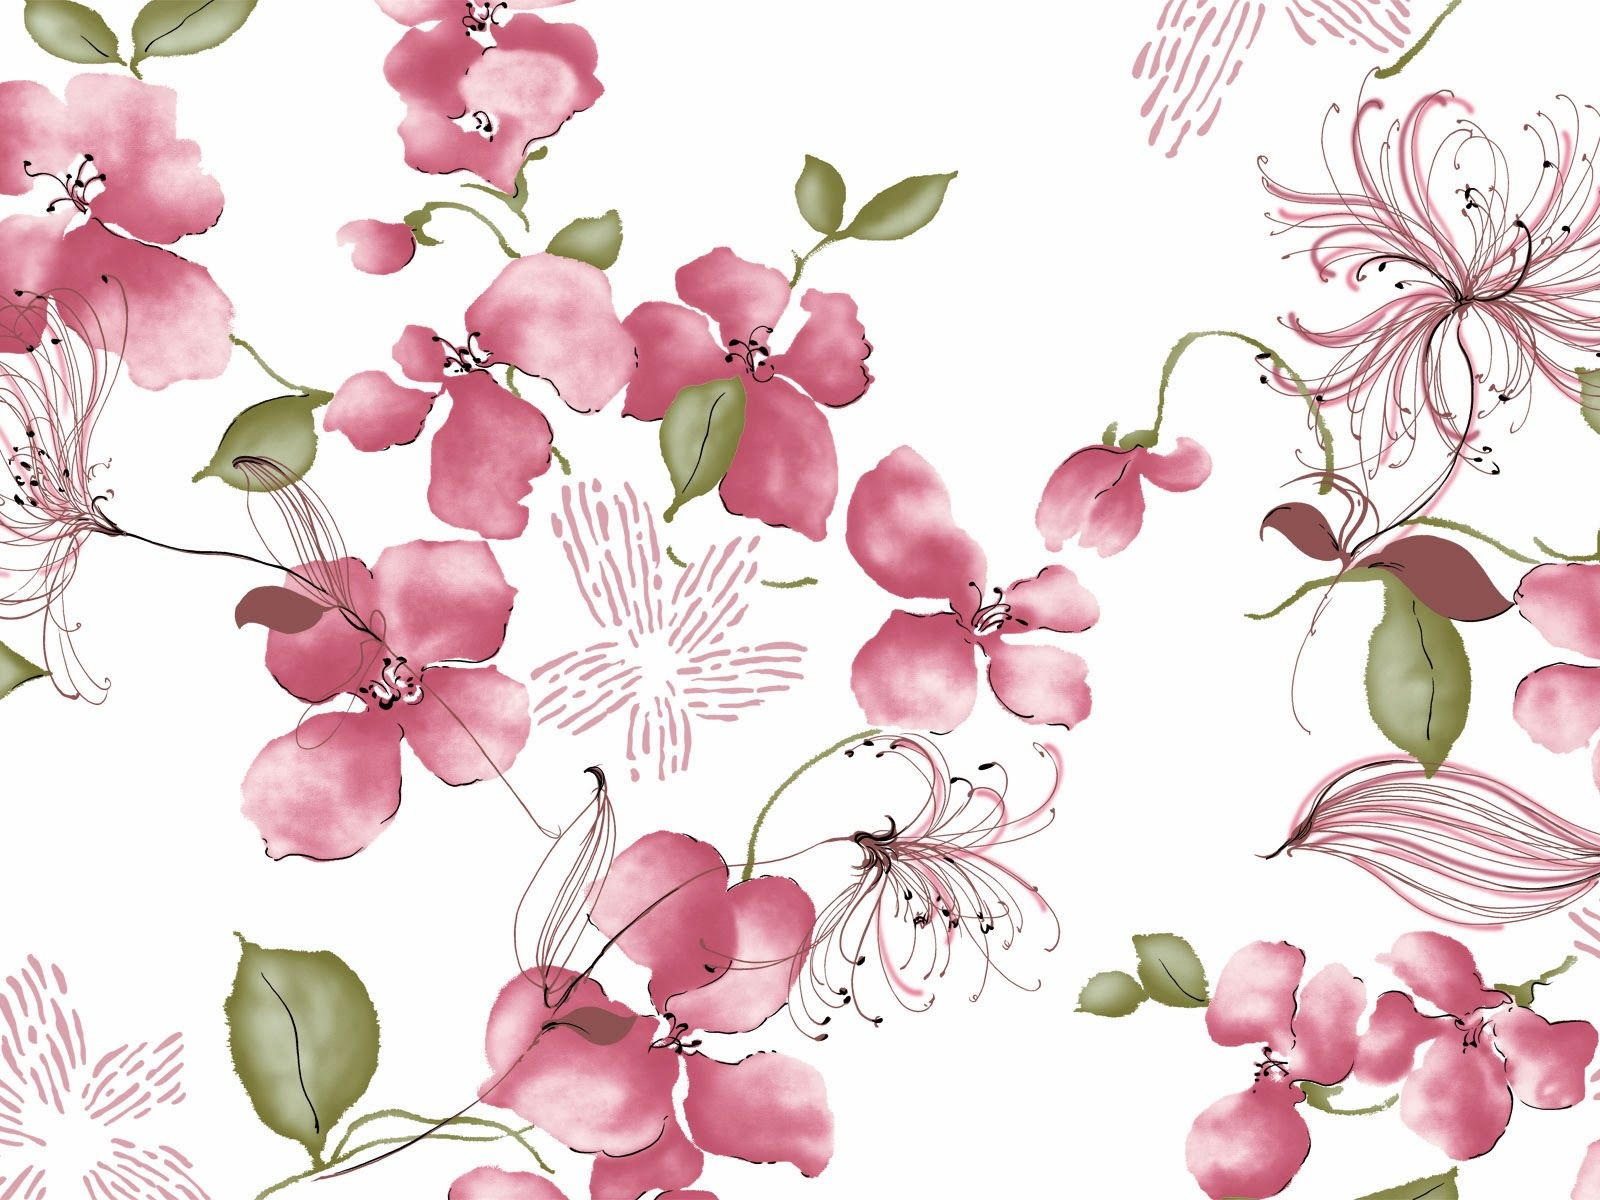 Vintage Flower Wallpapers Desktop Background With High Definition 2560x1440 Tumblr